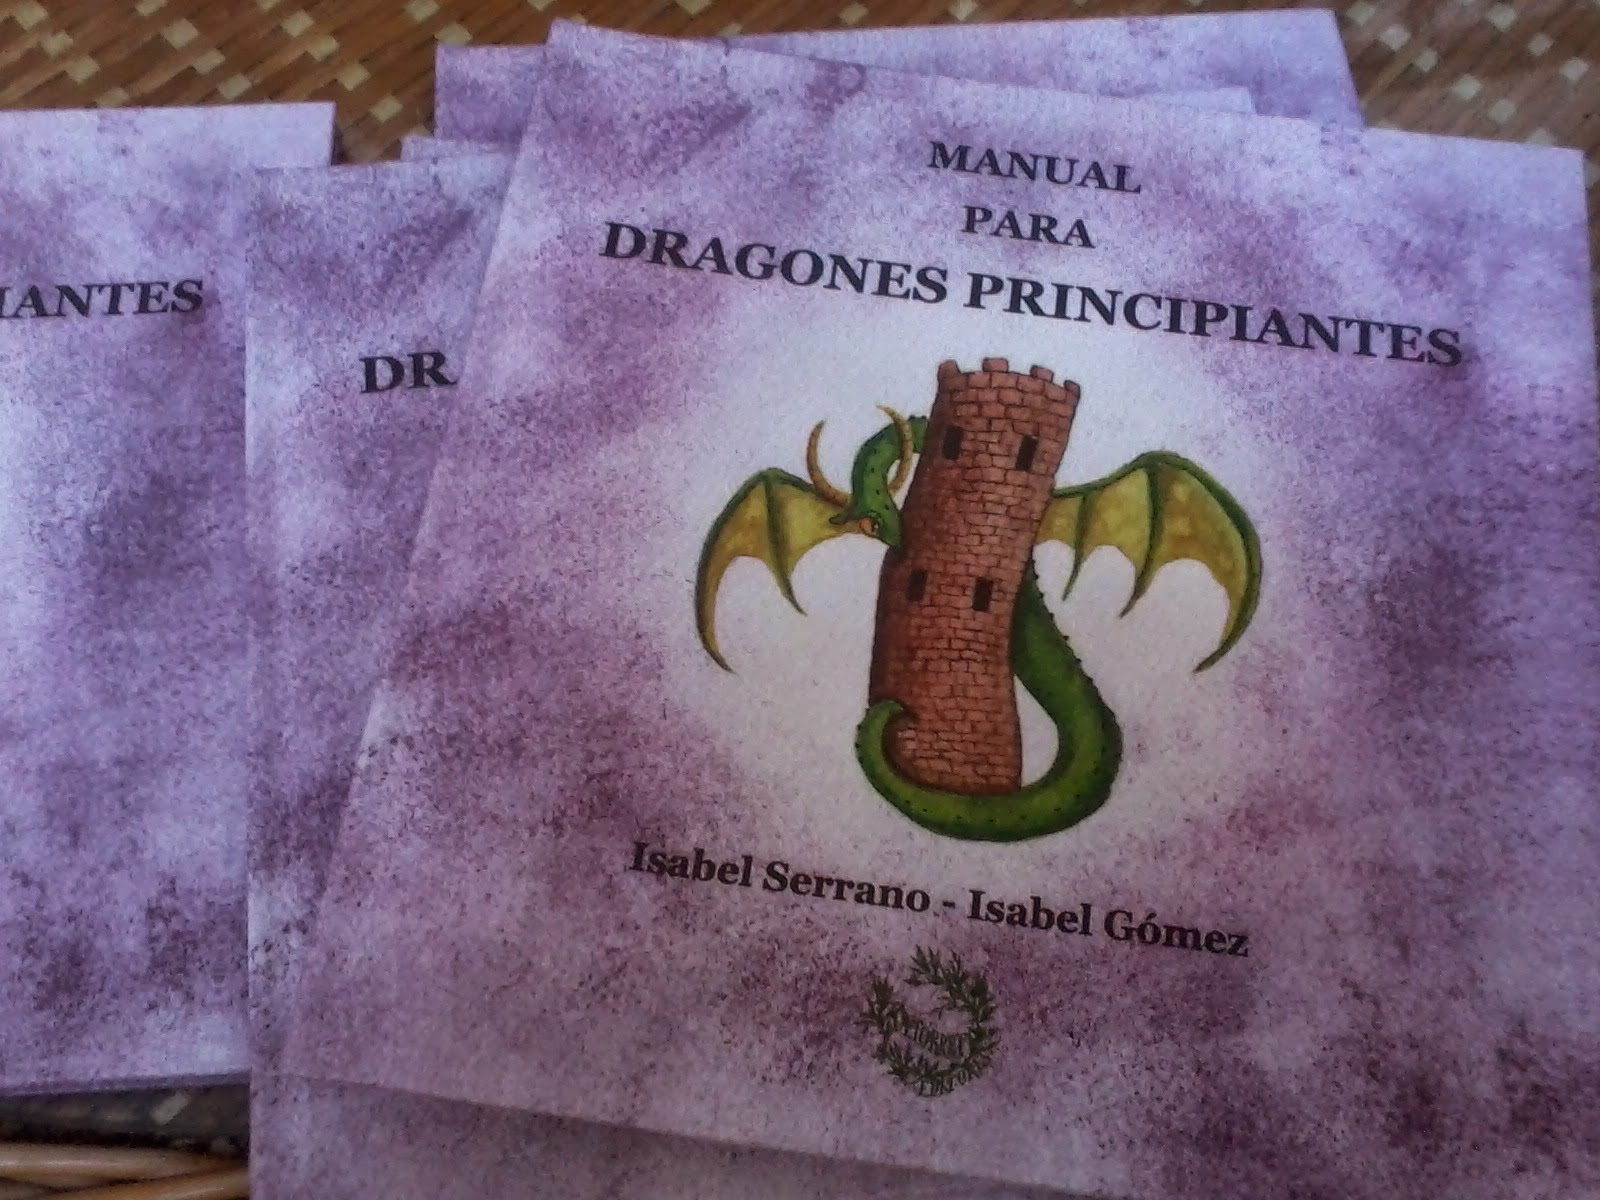 Manual para dragones principiantes